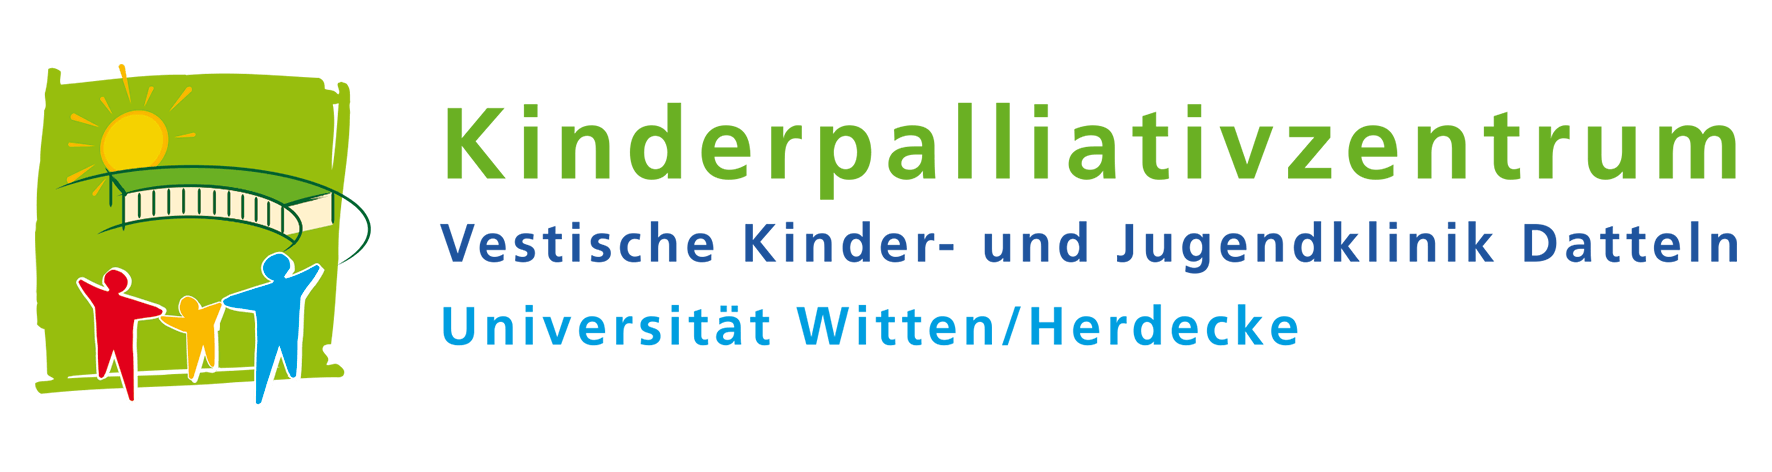 Kinderpalliativzentrum Datteln e.V.